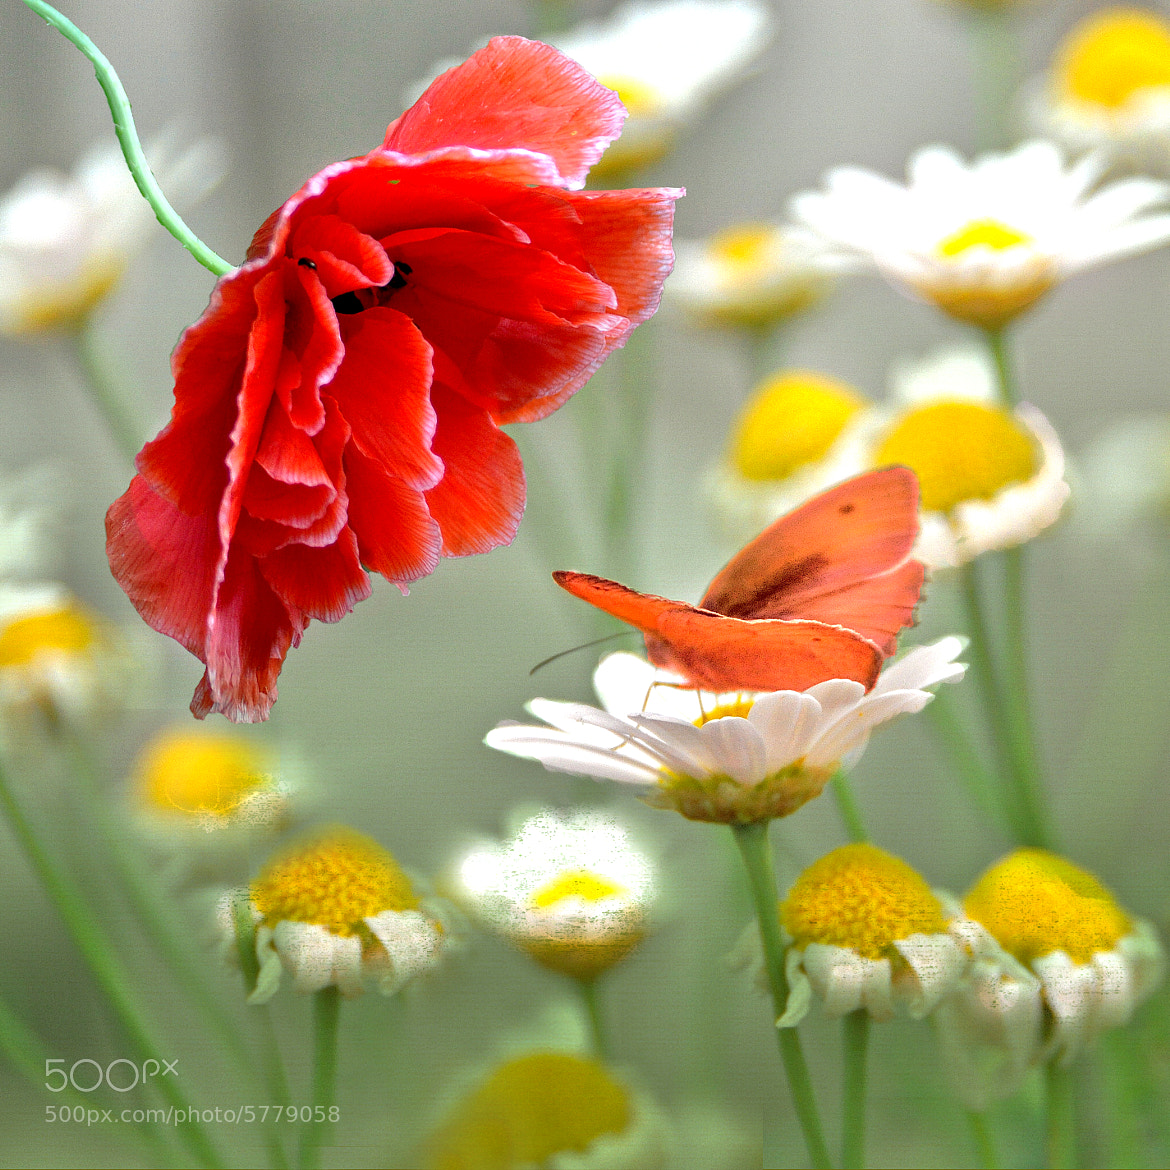 Photograph The poppy and the butterfly by Irene Weiss on 500px